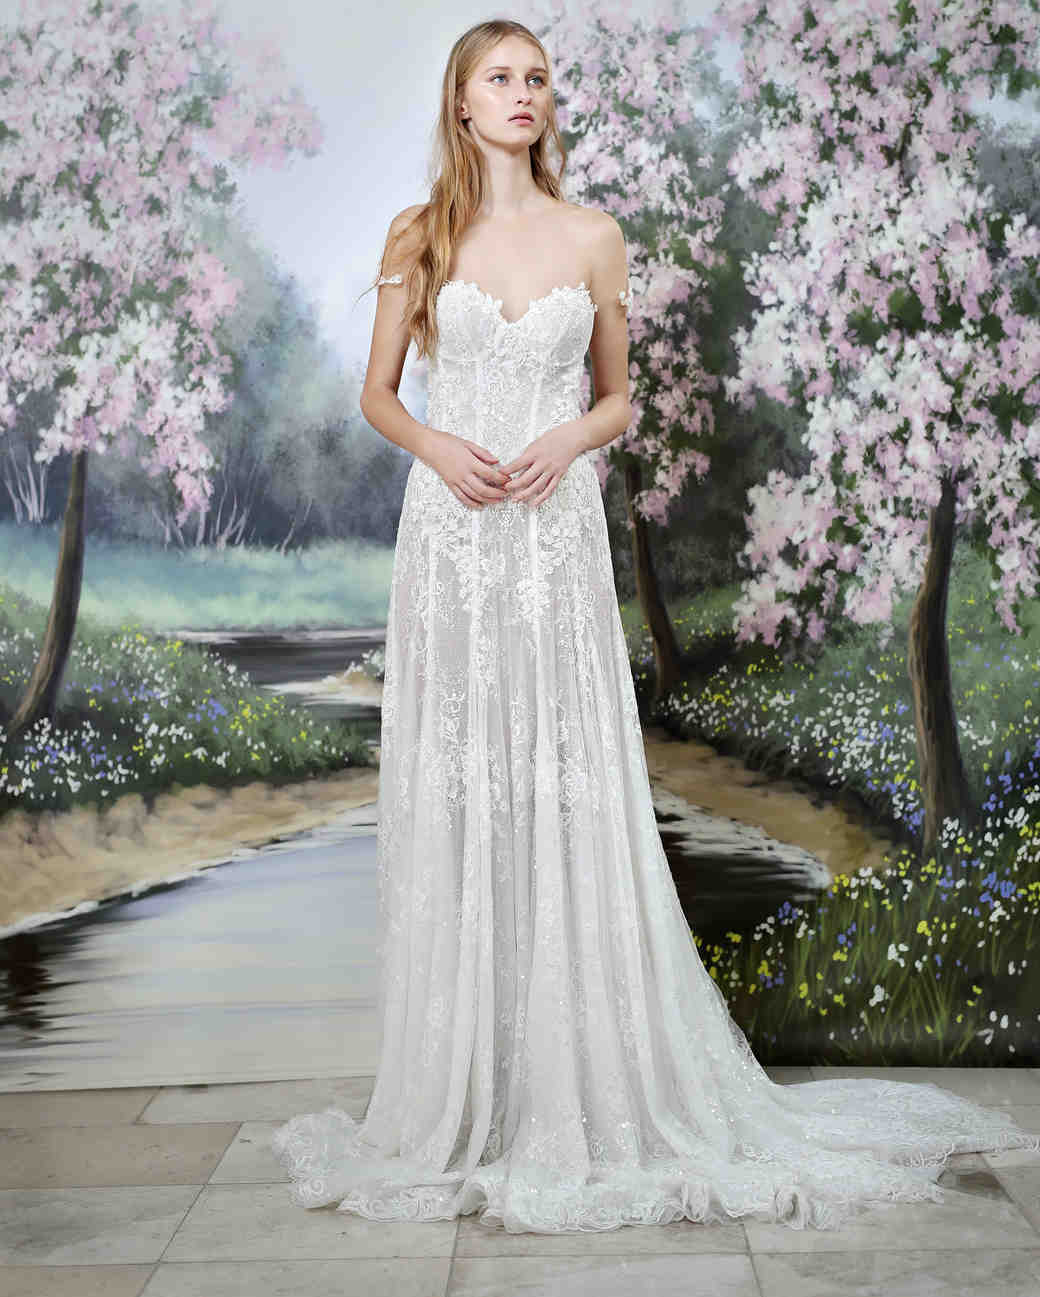 Galia Lahav Wedding Dresses: Gala By Galia Lahav Fall 2019 Wedding Dress Collection